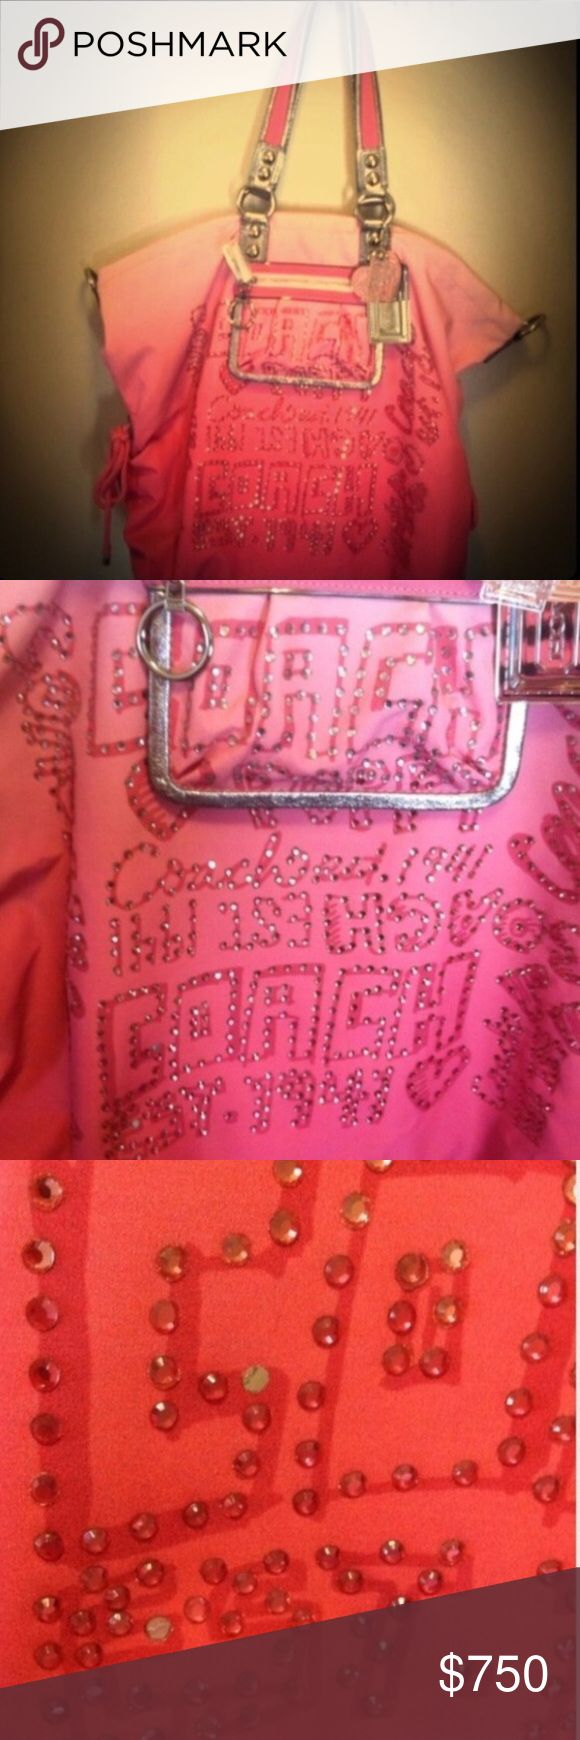 New Coach Poppy Purse 🆕💗Limited Edition Coach Poppy Purse💗authentic💗number is in fourth pic💗pretty pink color💗new with tags💗missing two rhinestones that is how I bought it❌NO TRADES❌please do not ask to trade💗I am not in a hurry to sell this...I might just keep it...will sell for the right price...I am open to reasonable offers with the offer button Coach Bags